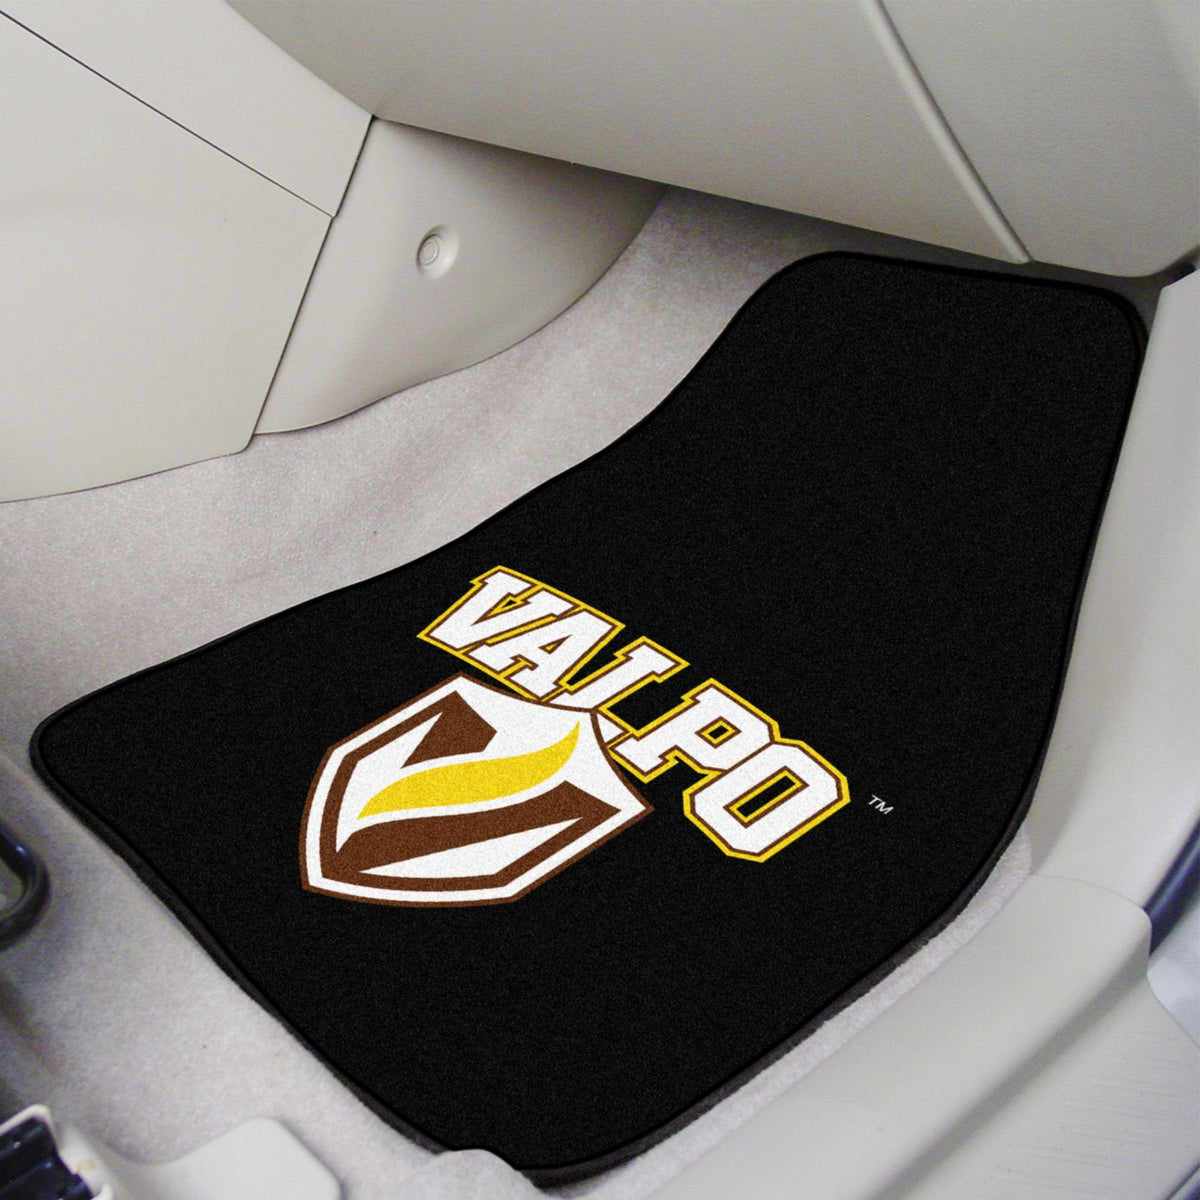 Collegiate - Carpet Car Mat, 2-Piece Set: T - Z Collegiate Car Mat, Front Car Mats, 2-pc Carpet Car Mat Set, Collegiate, Auto Fan Mats Valparaiso